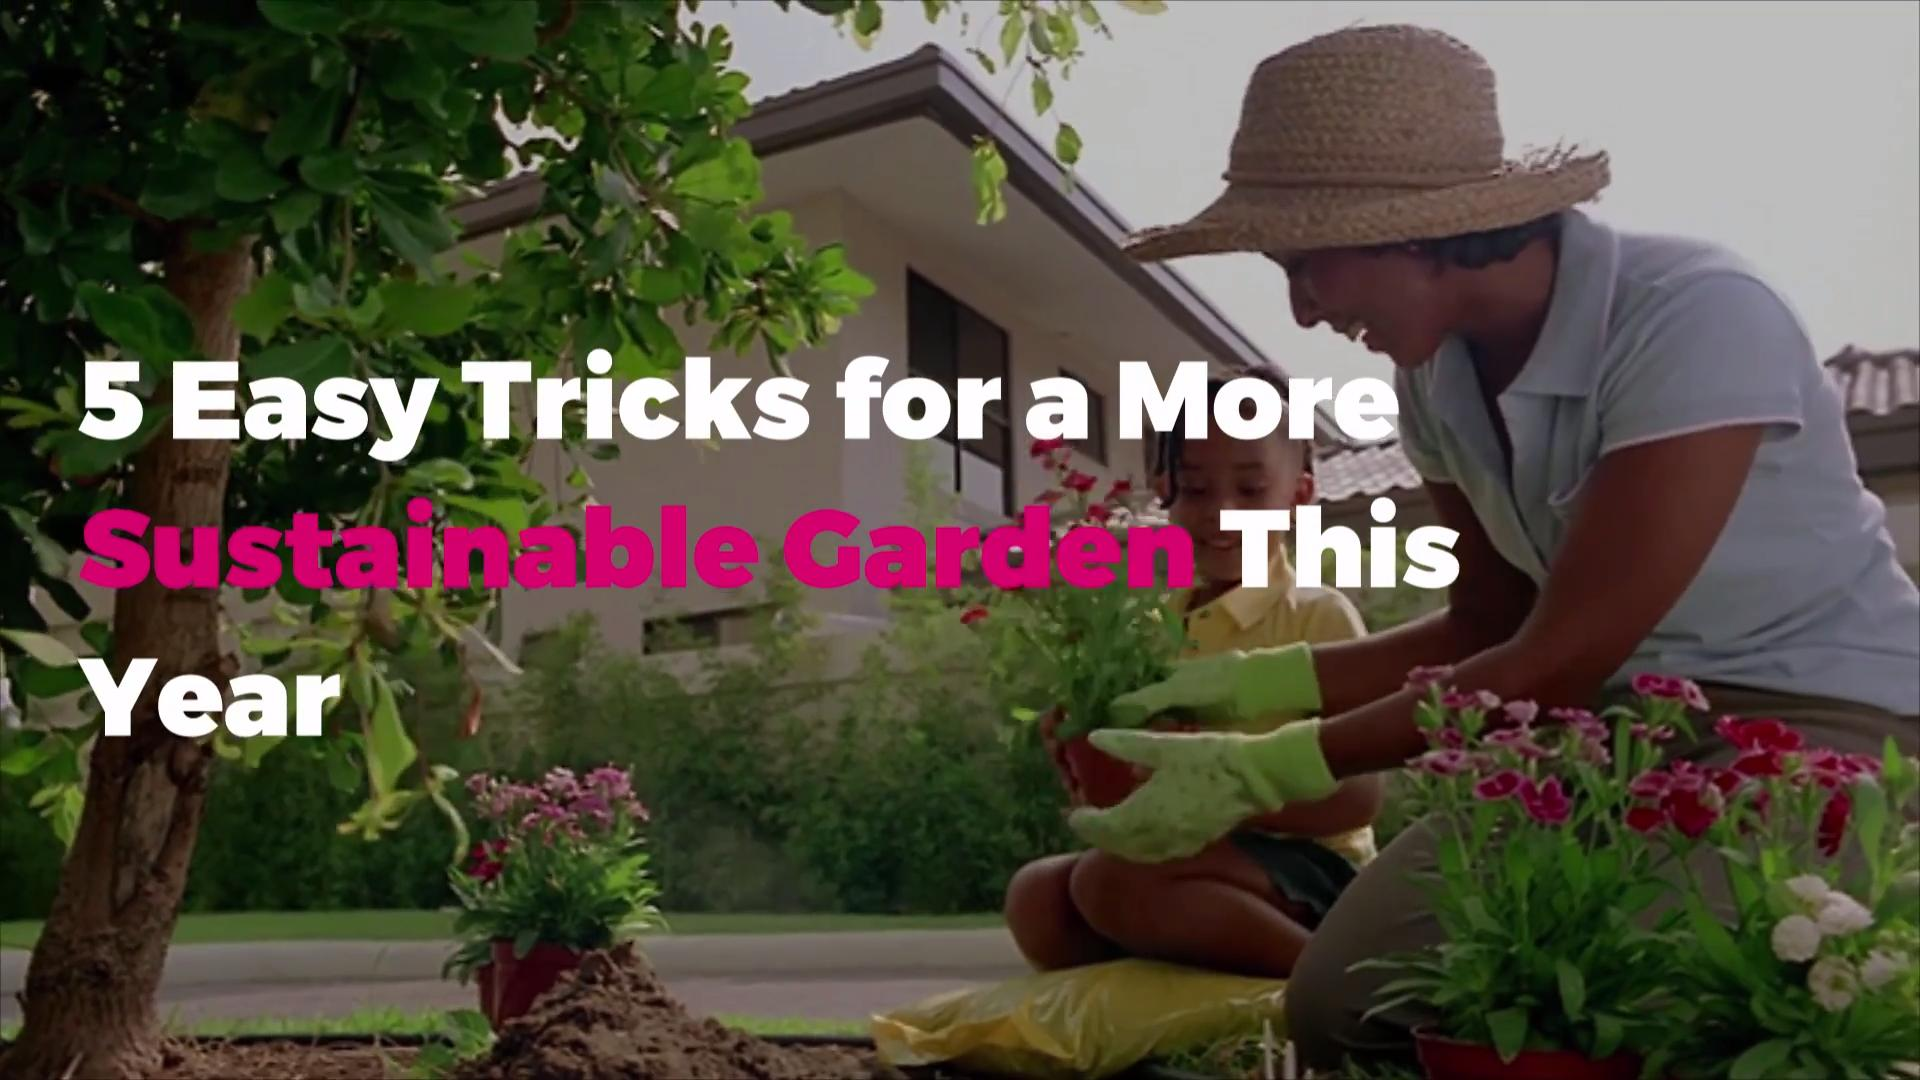 5 Easy Tricks for a More Sustainable Garden This Year